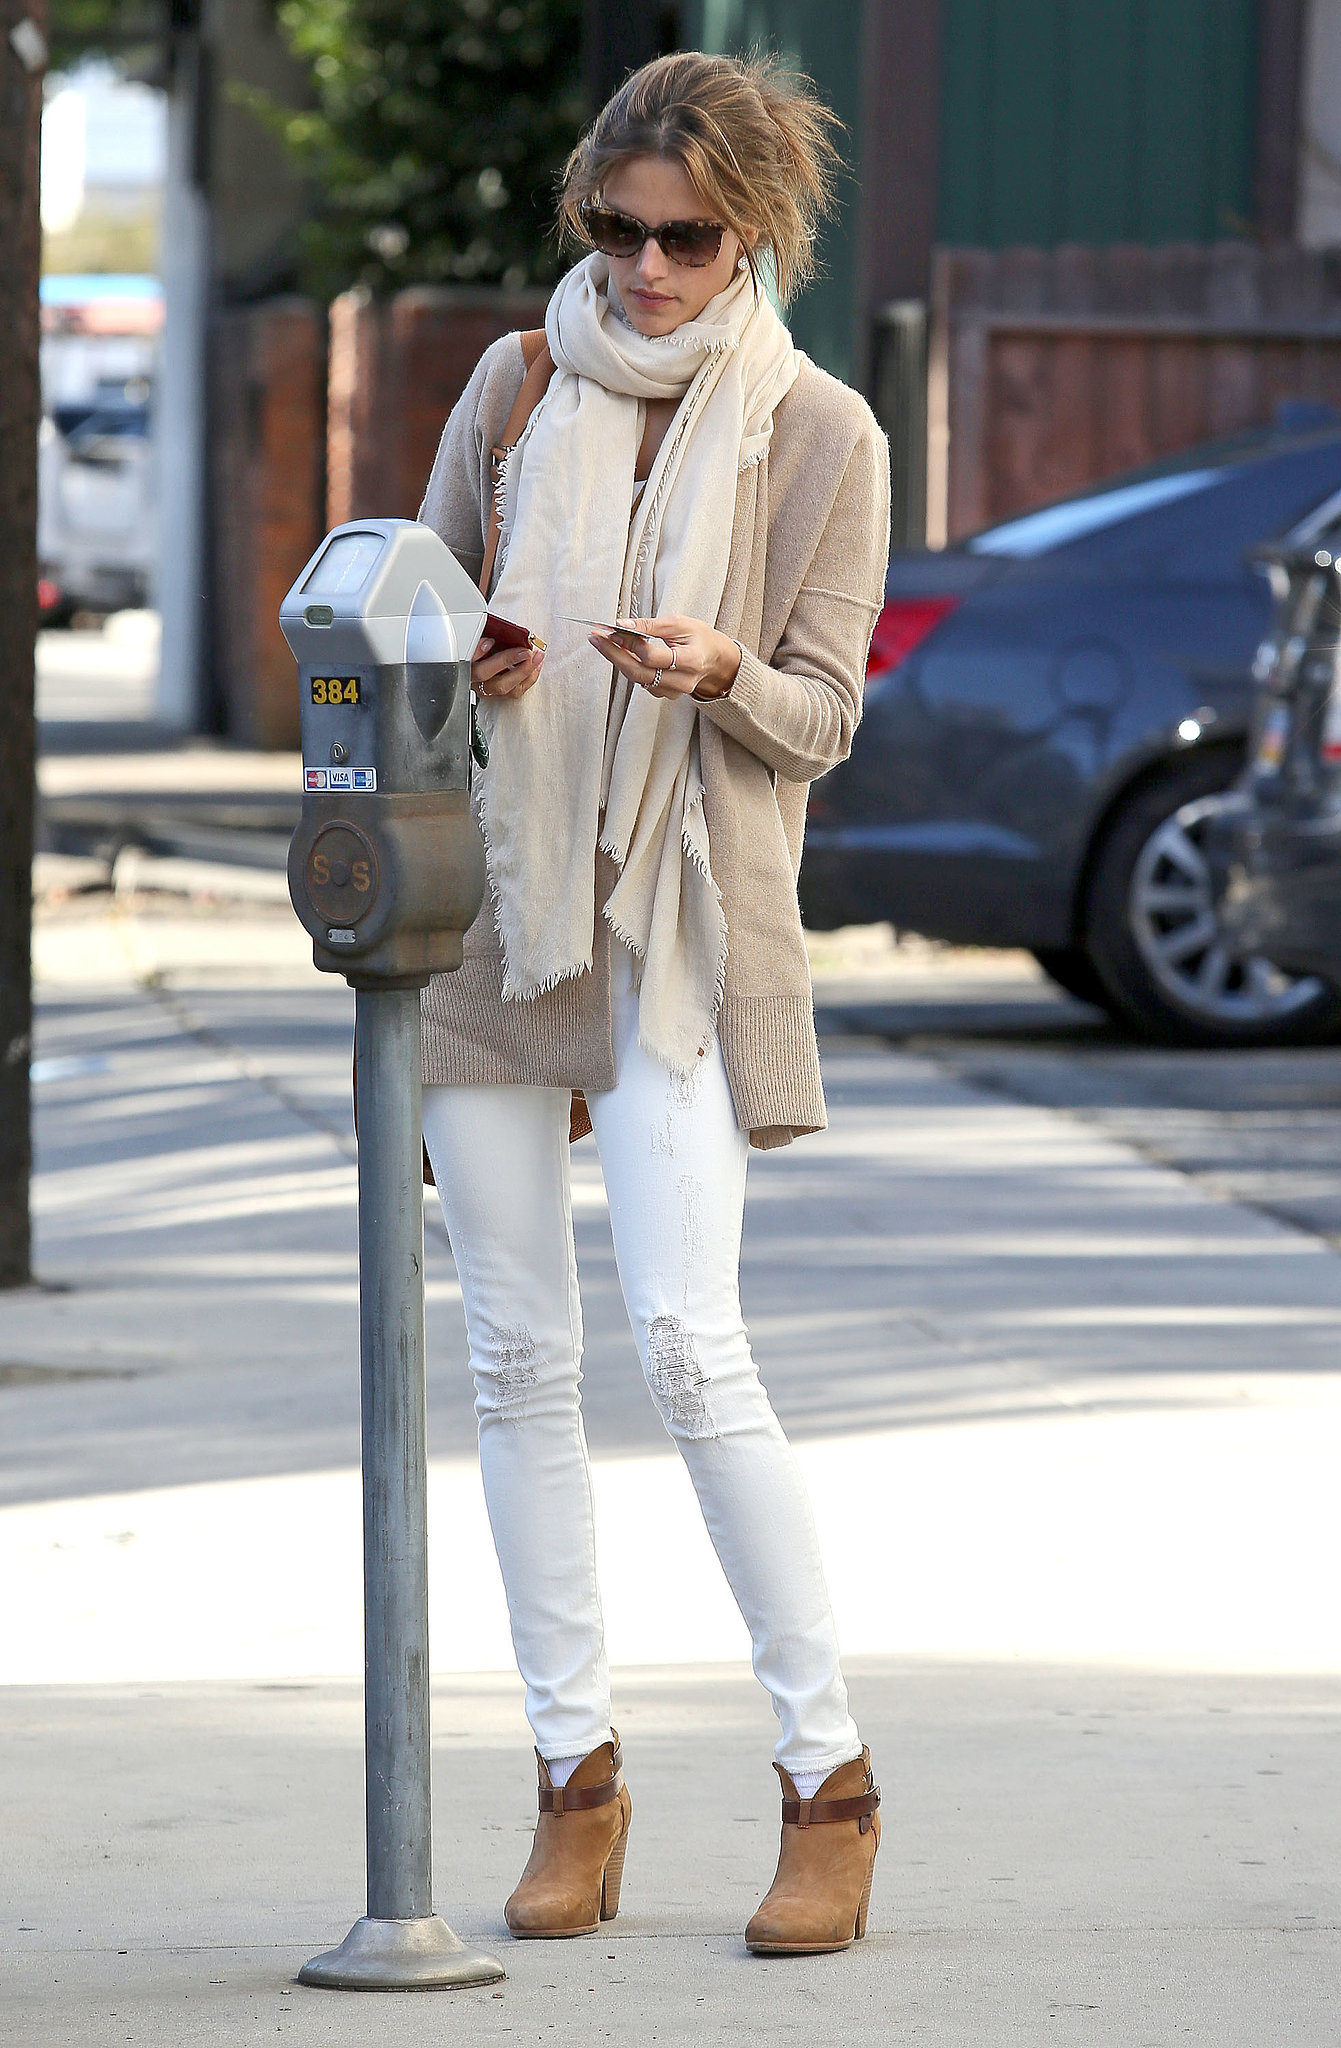 White's not just for Summer months anymore! She put together a neutral-hued outfit anchored with distressed jeans earlier this Winter.